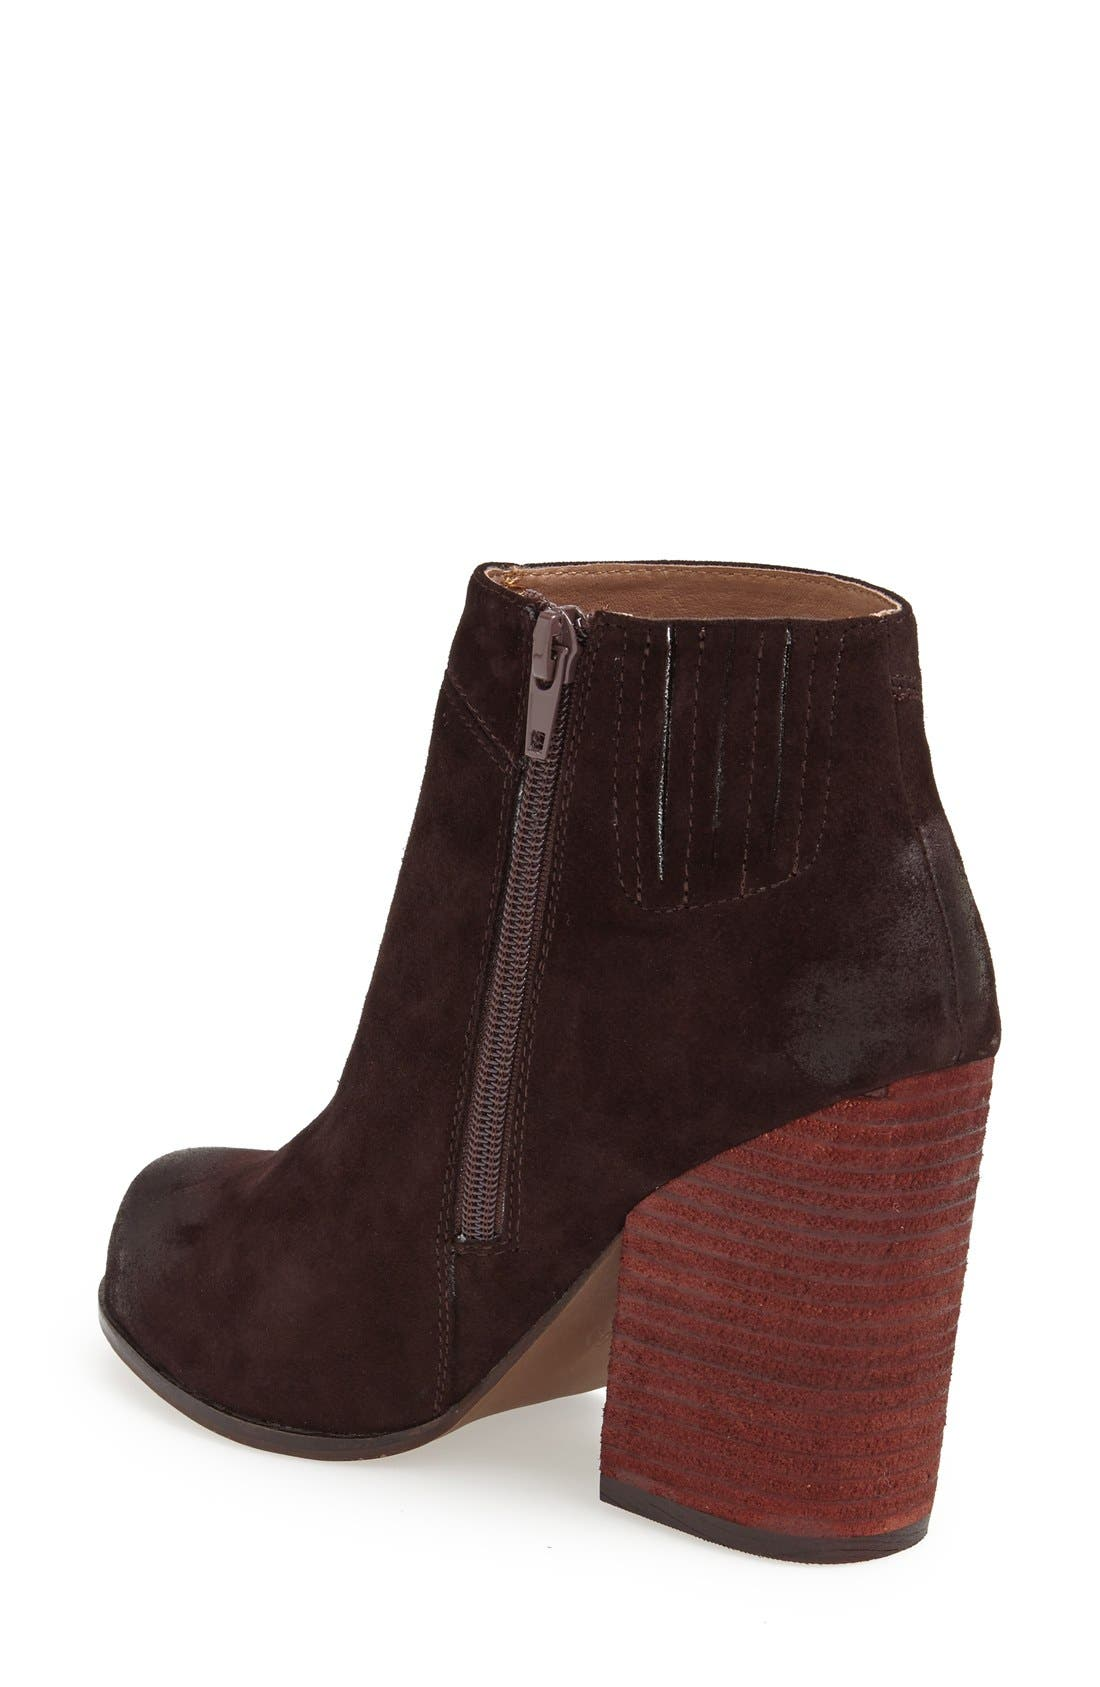 Alternate Image 2  - Jeffrey Campbell 'Hanger' Bootie (Women)